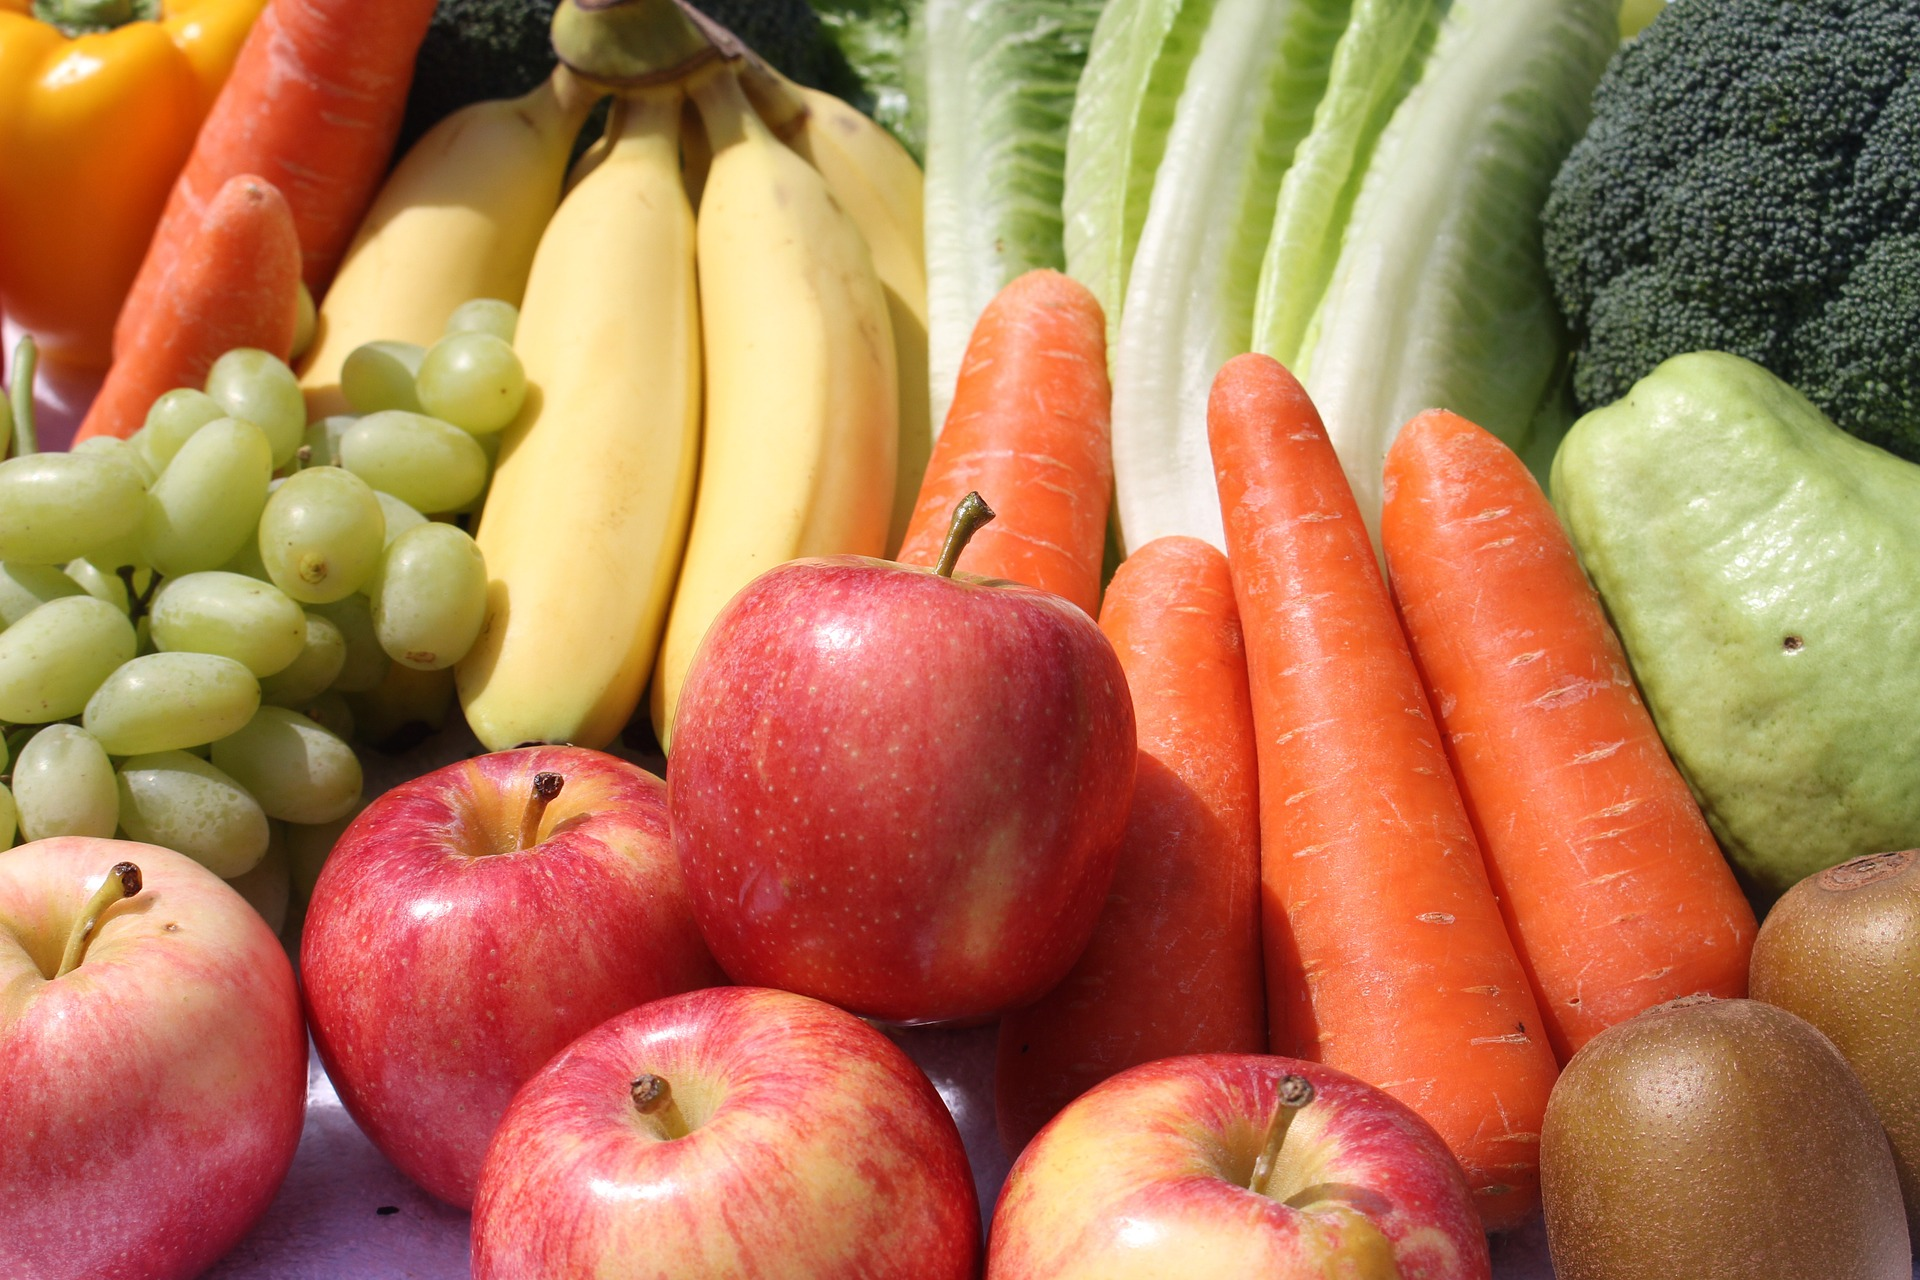 Difference between Raw Fruits and Raw Veggies